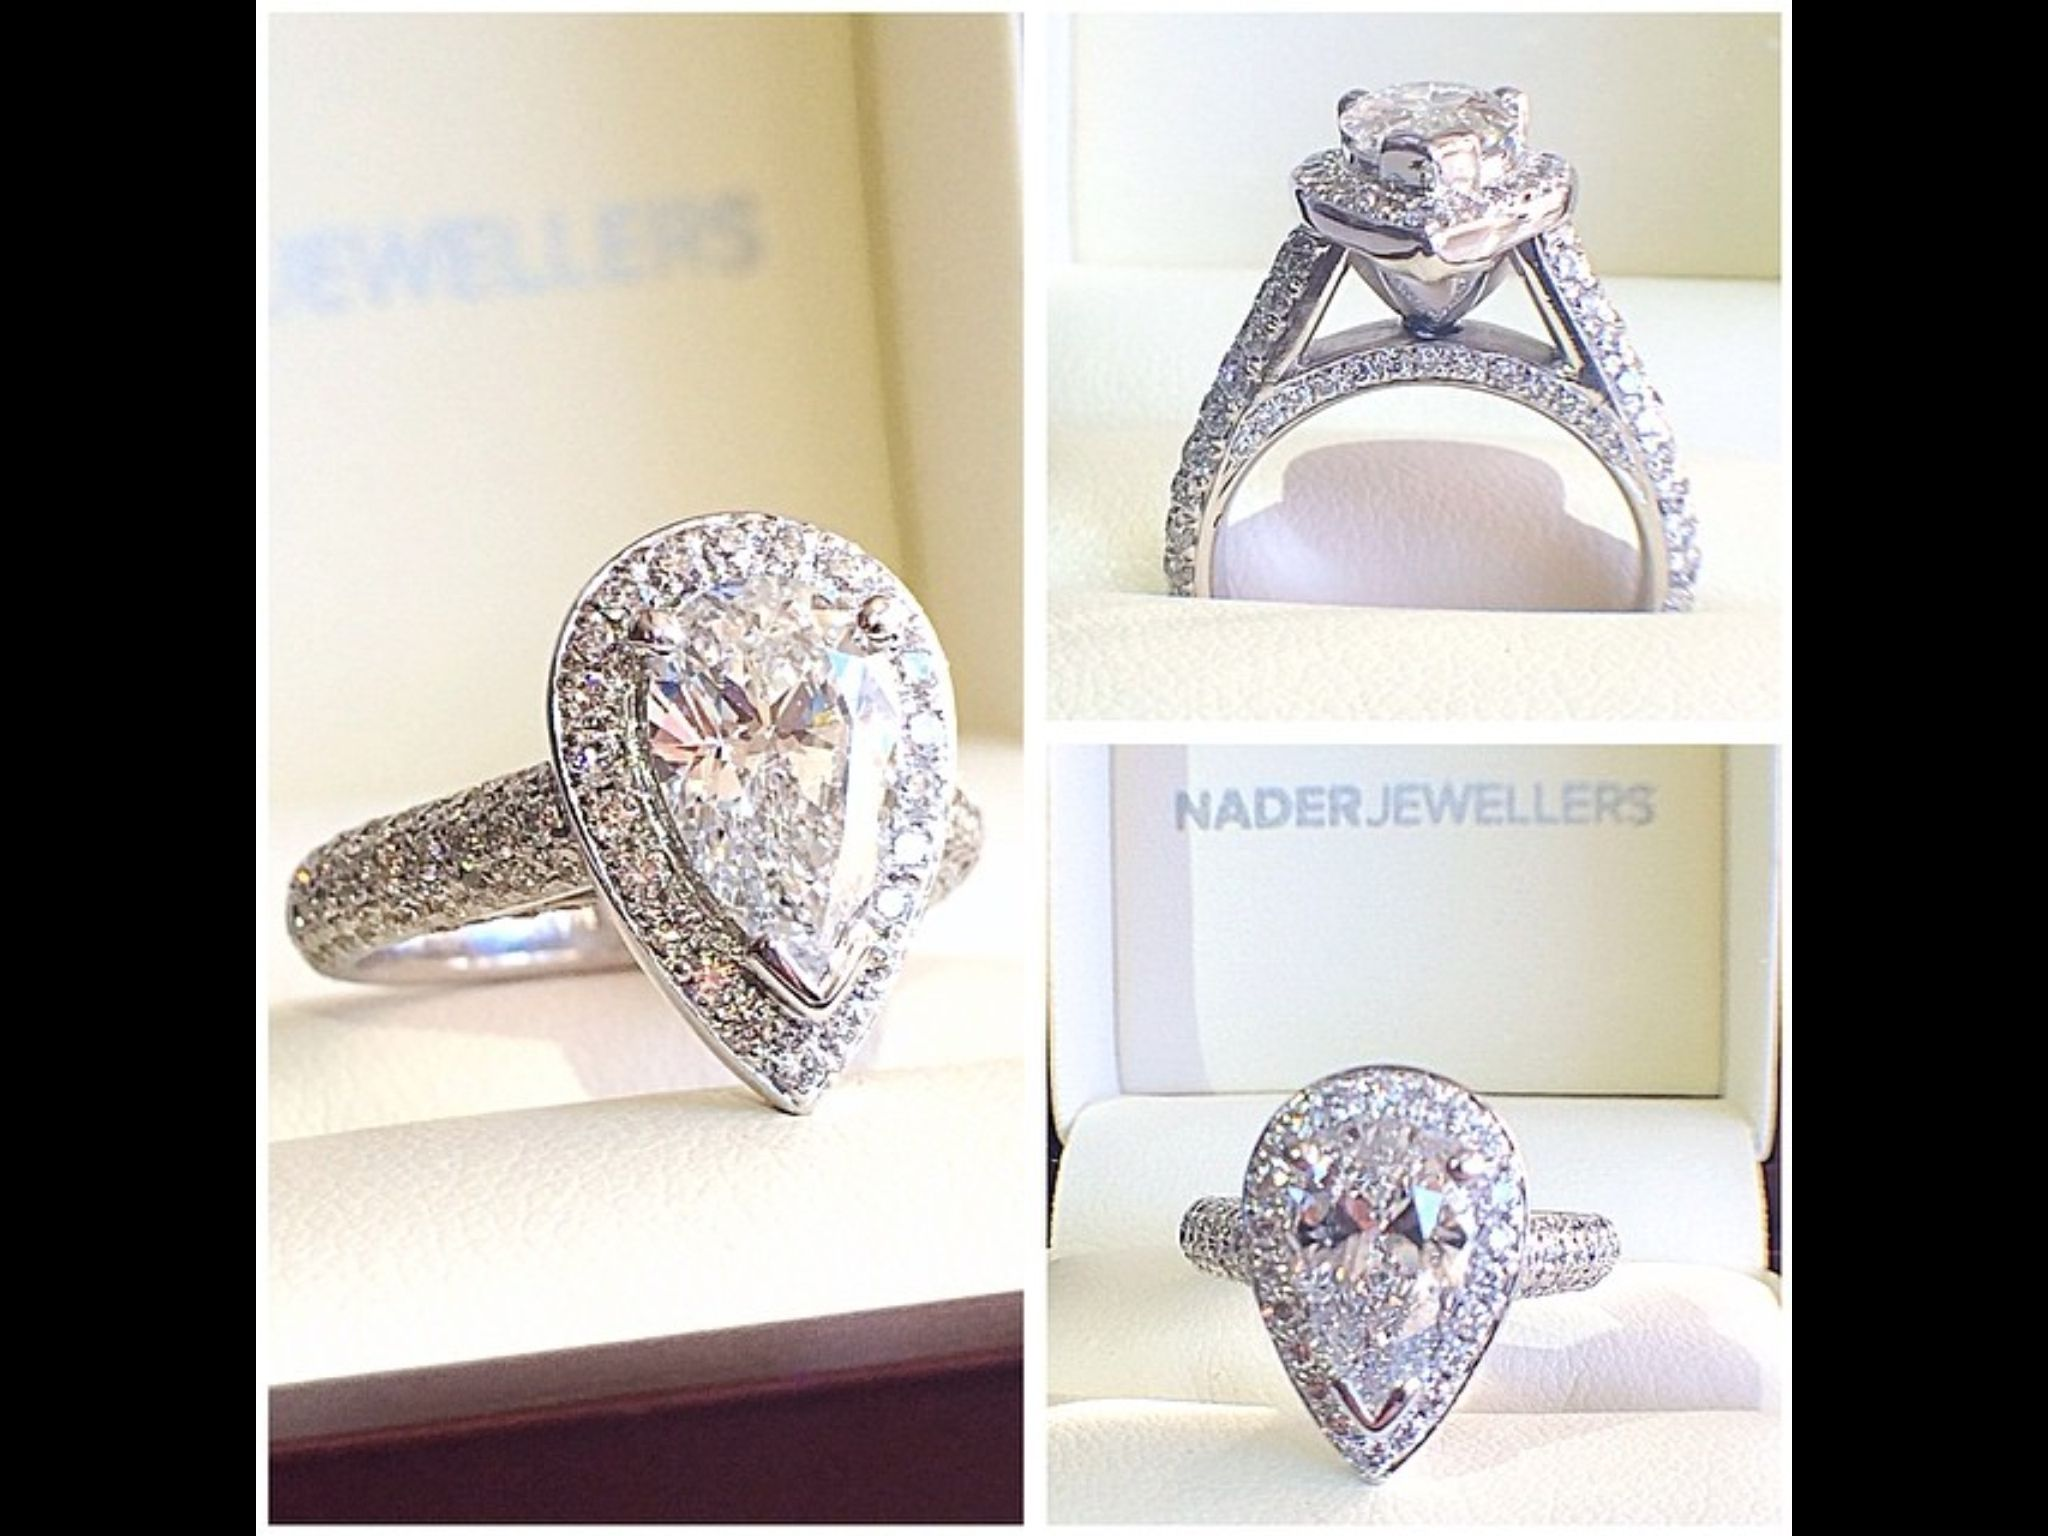 Nader Jewellers Australia Teardrop Diamond Engagement Ring I Want To Try  It On